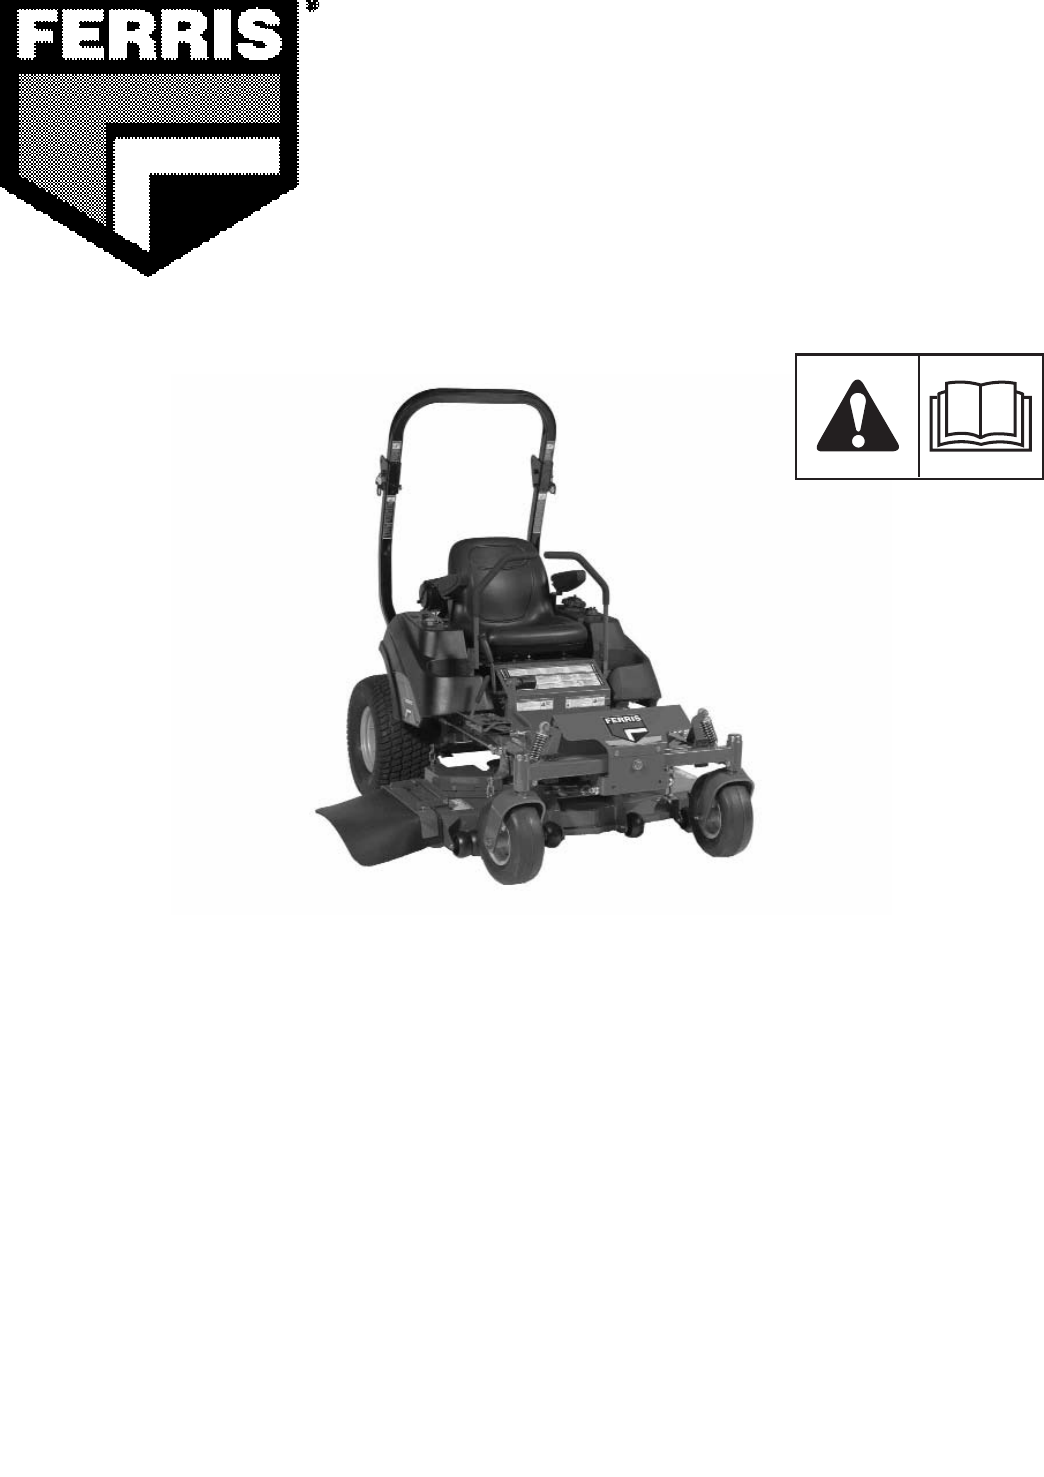 Ferris Industries Lawn Mower IS1500Z User Guide | ManualsOnline.com